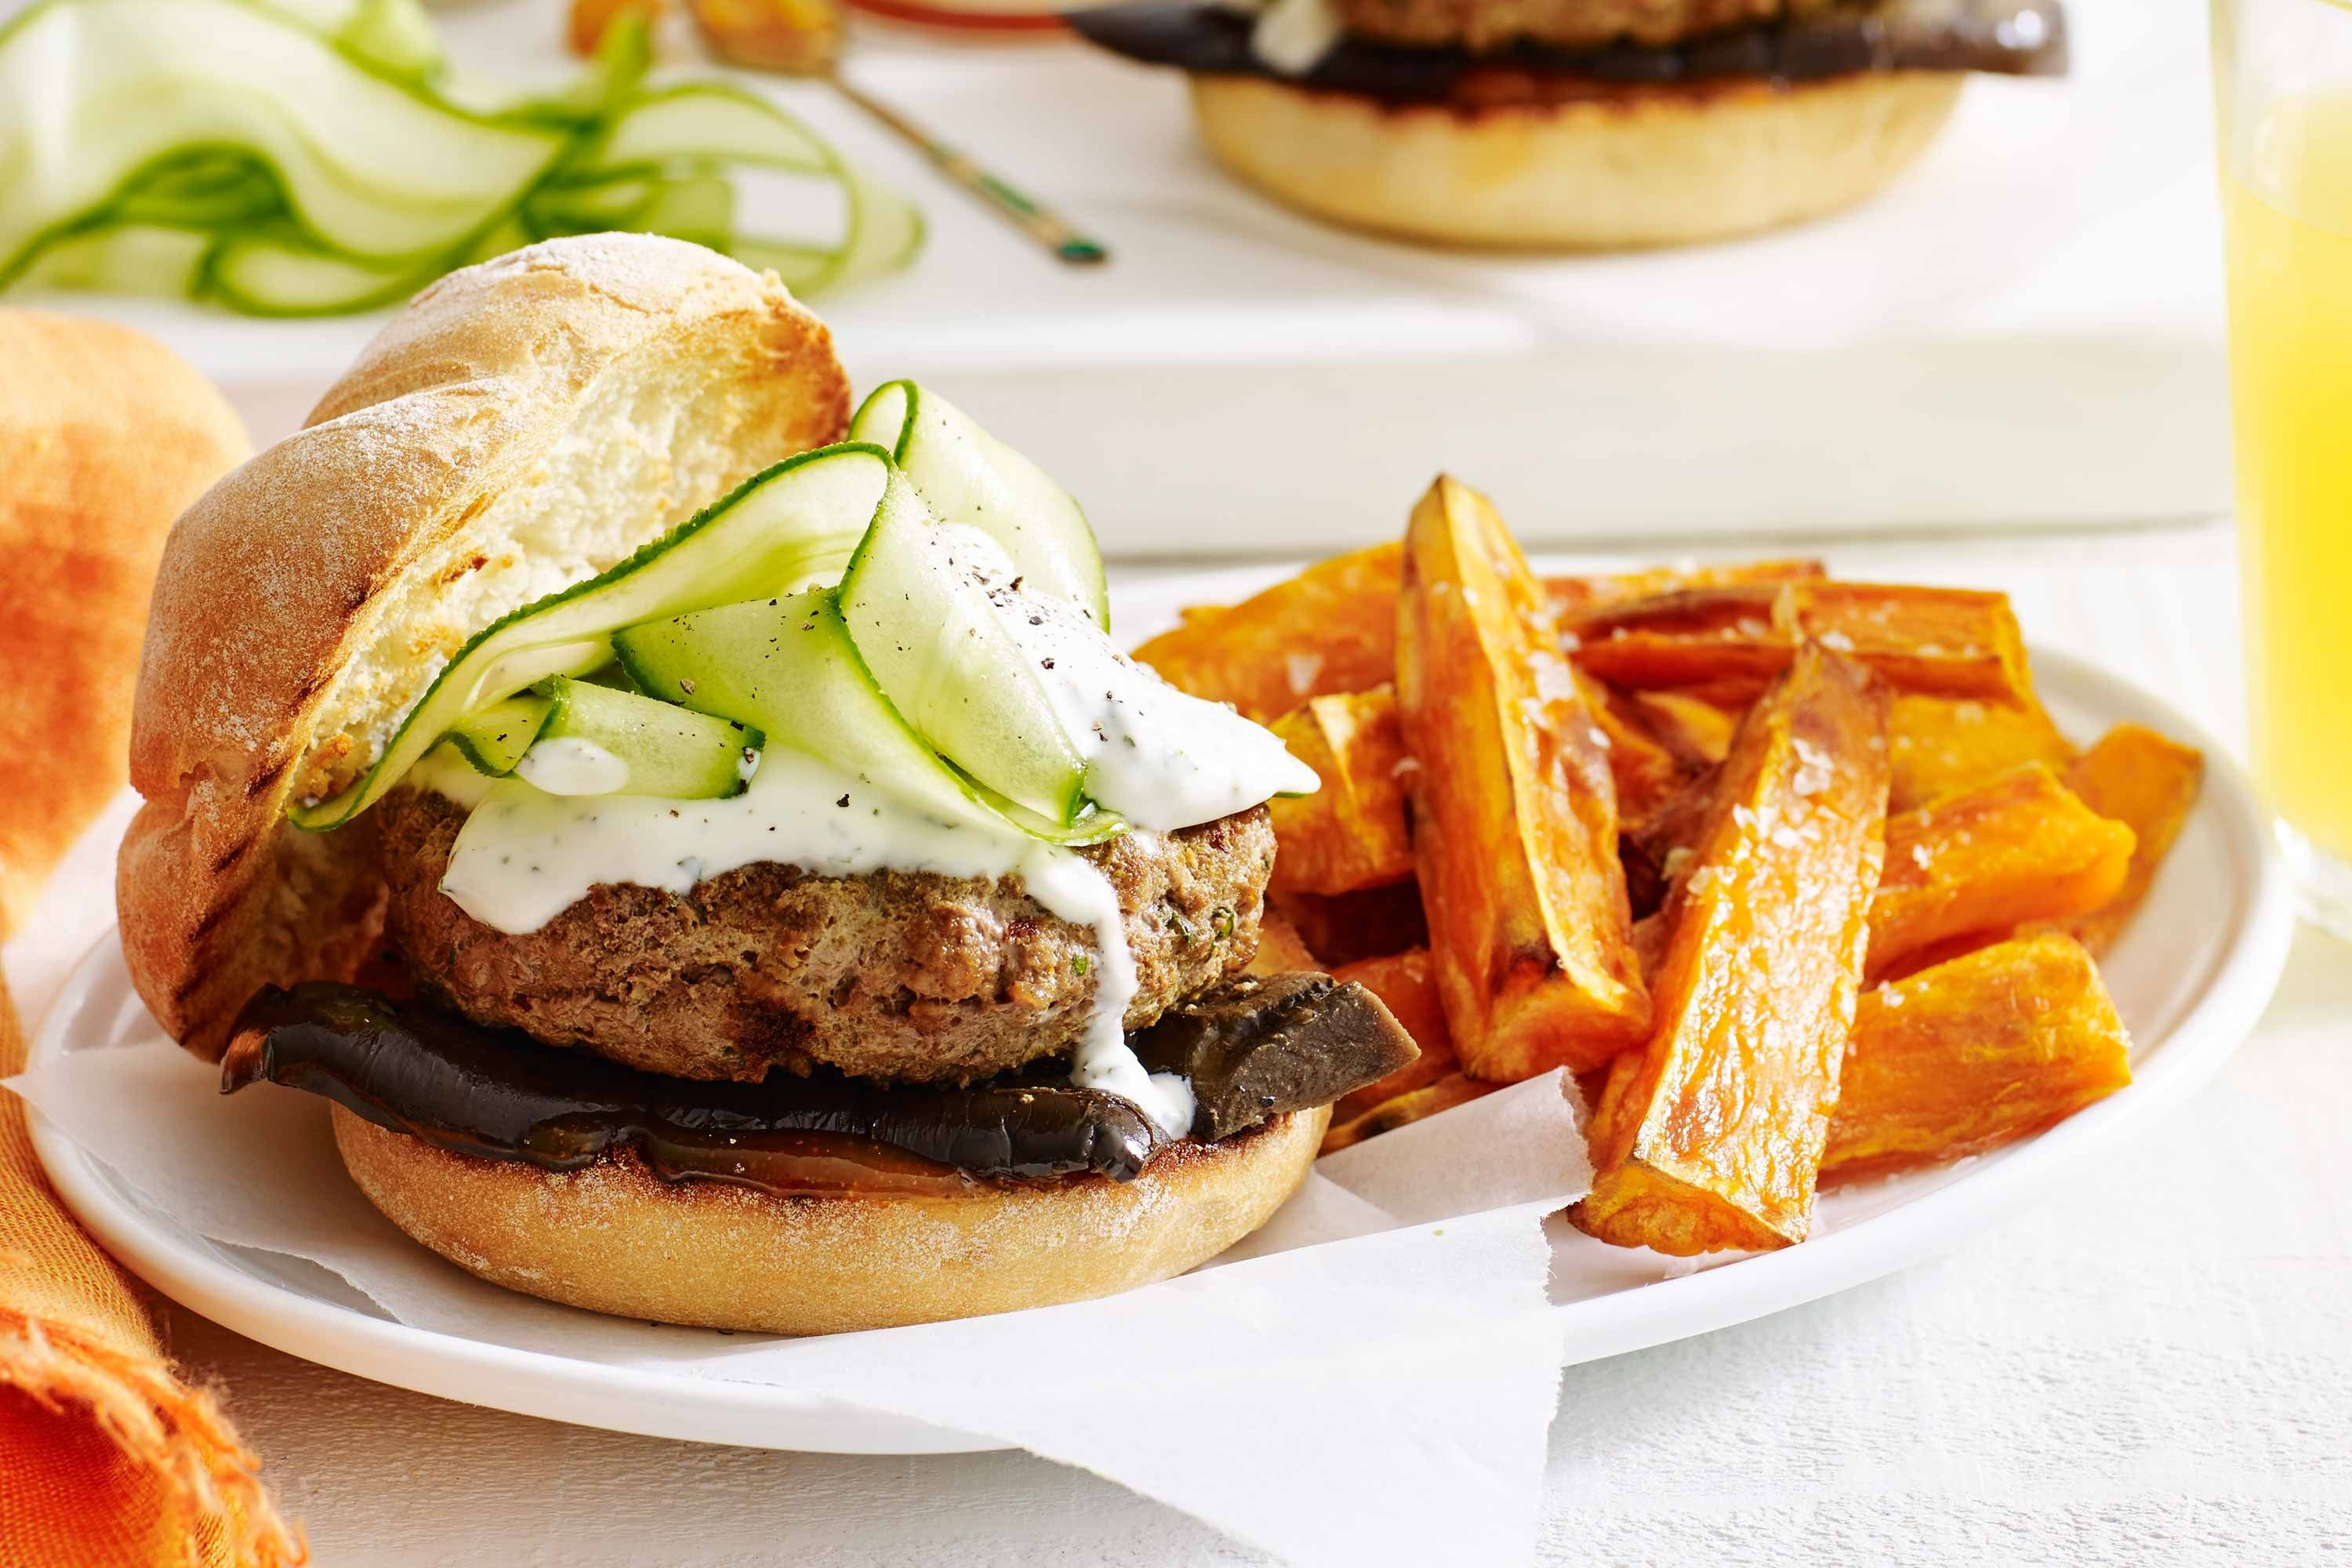 Indian-style burgers with minted yoghurt